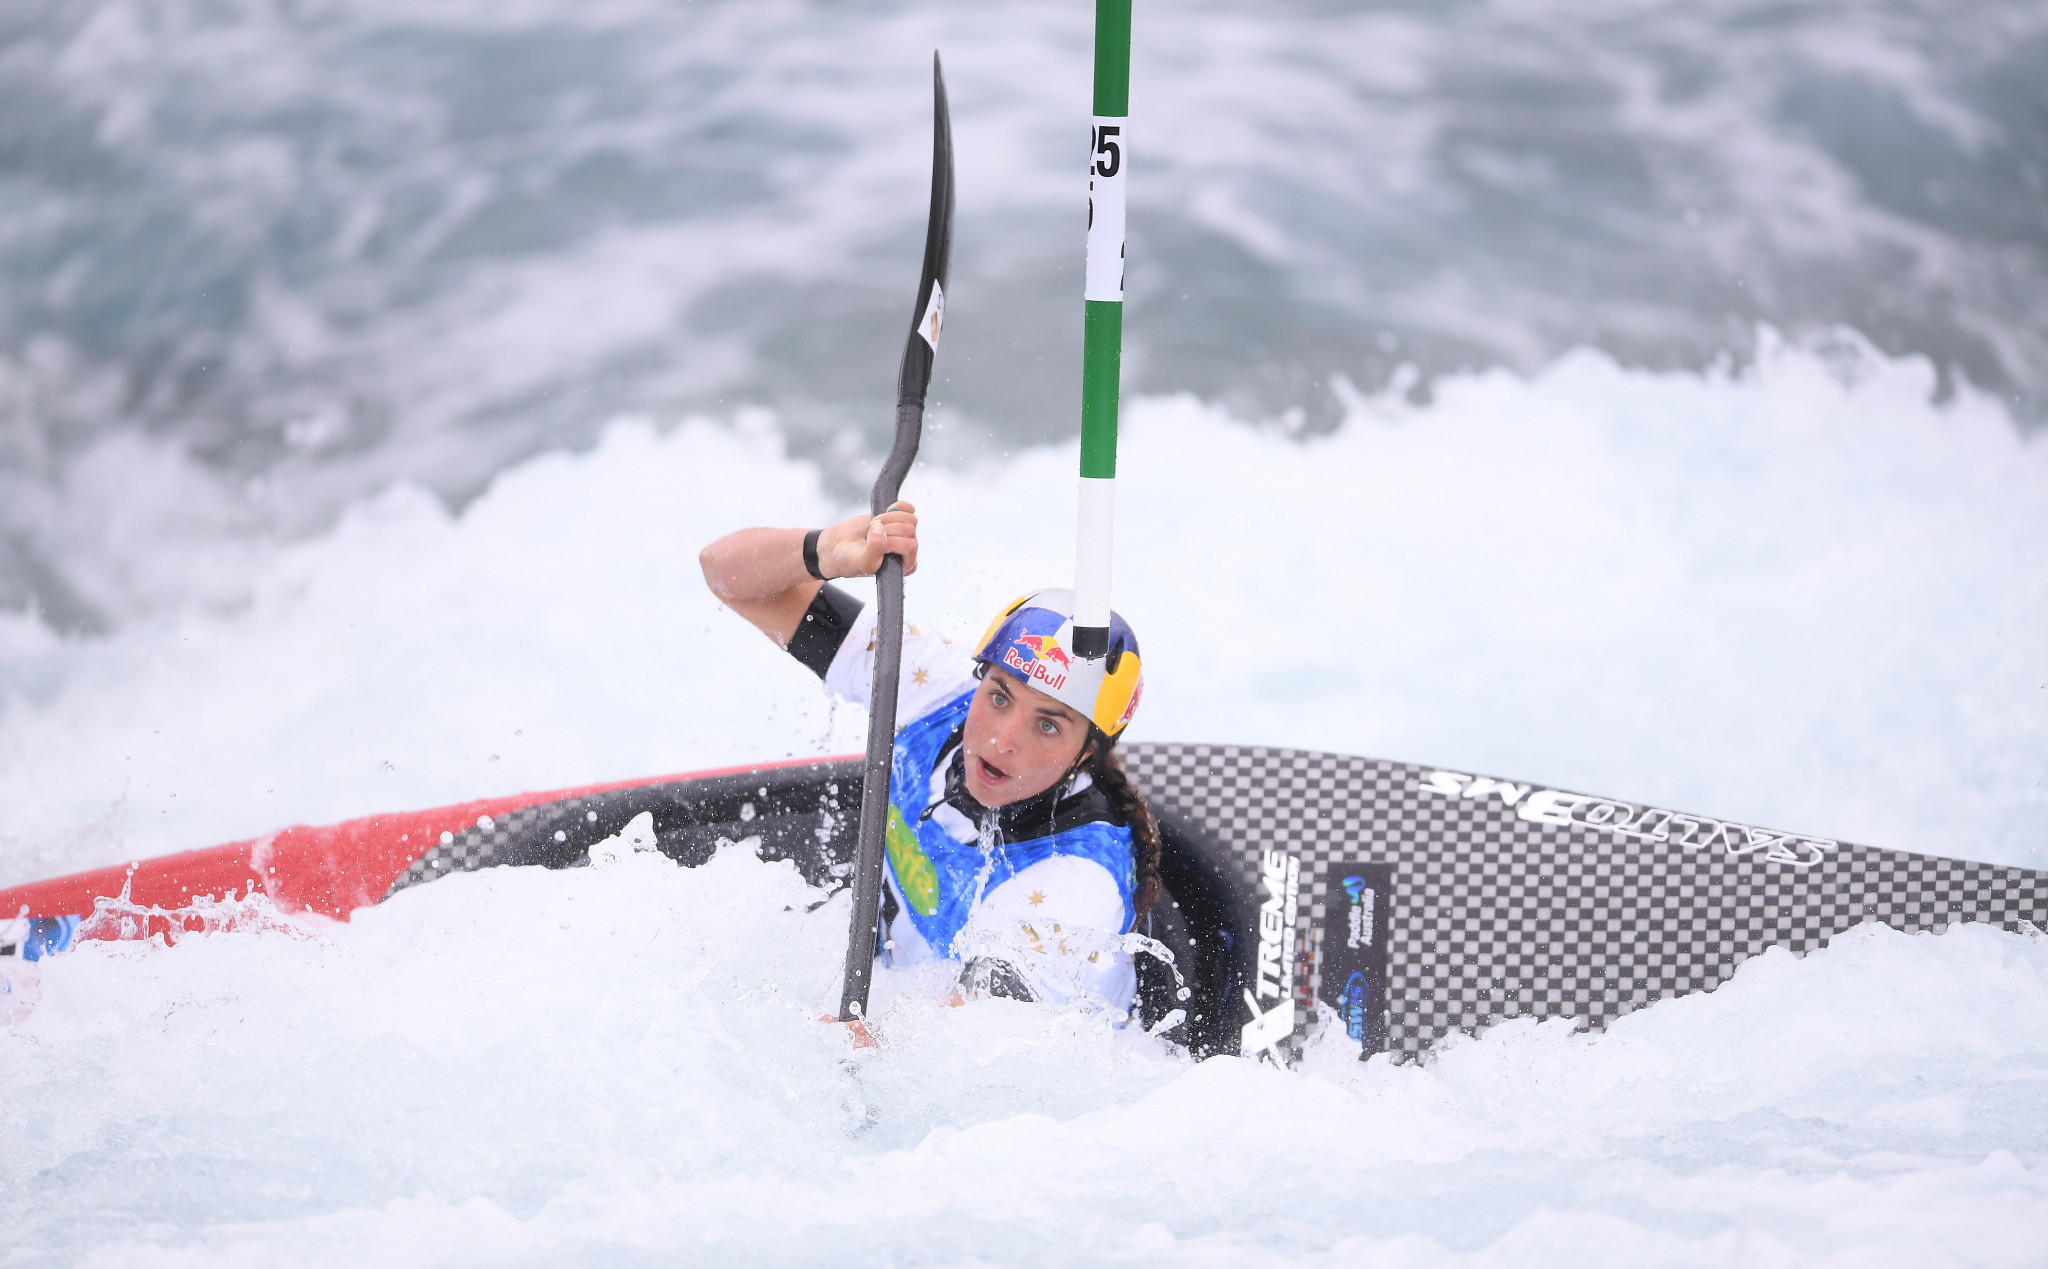 Australian star Jessica Fox was in solid form in the women's C1 and K1 events ©Getty Images